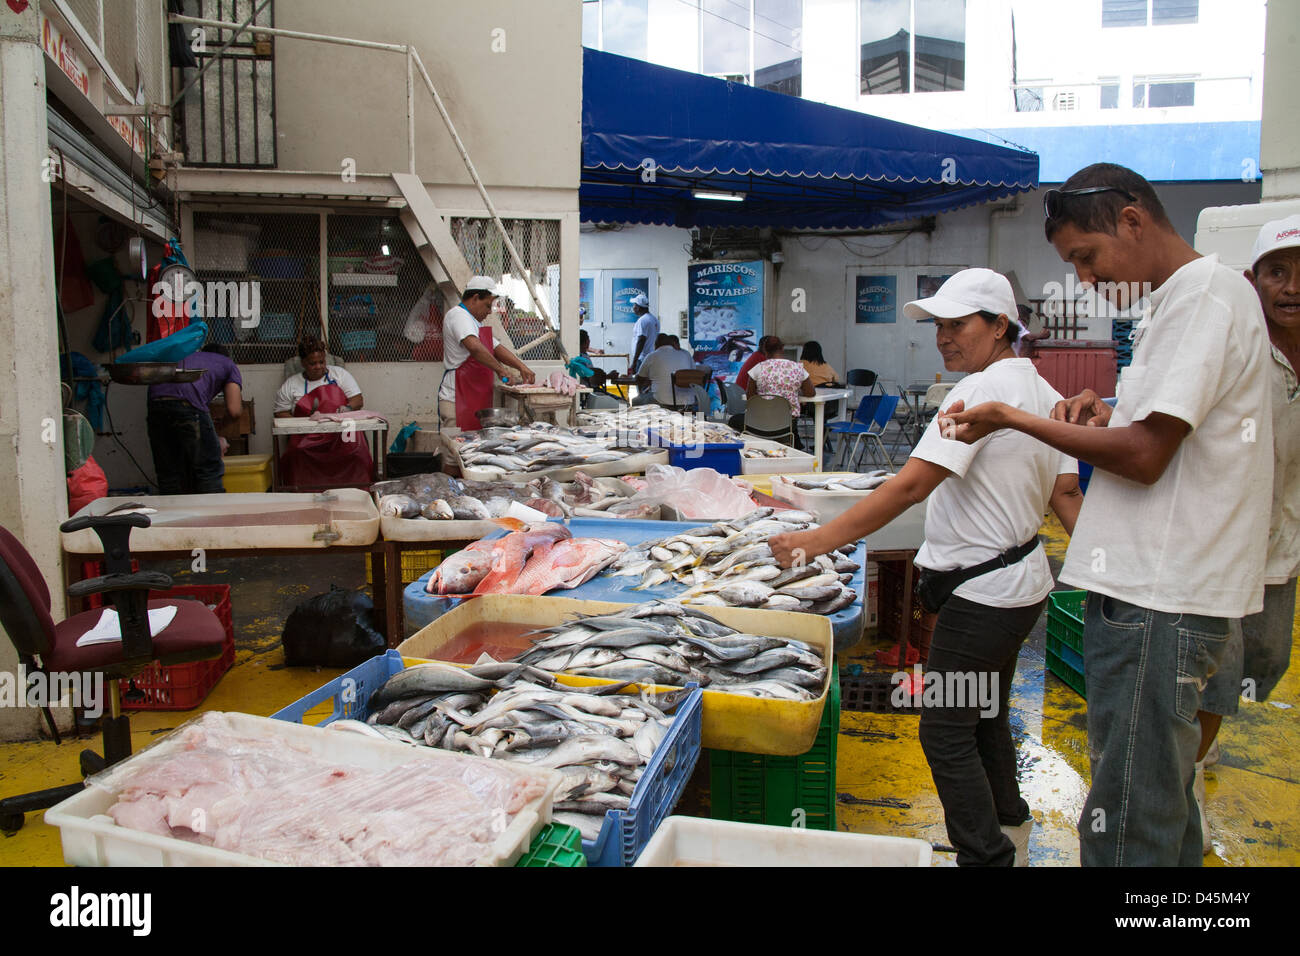 Buyers at the fish market in Panama City. - Stock Image